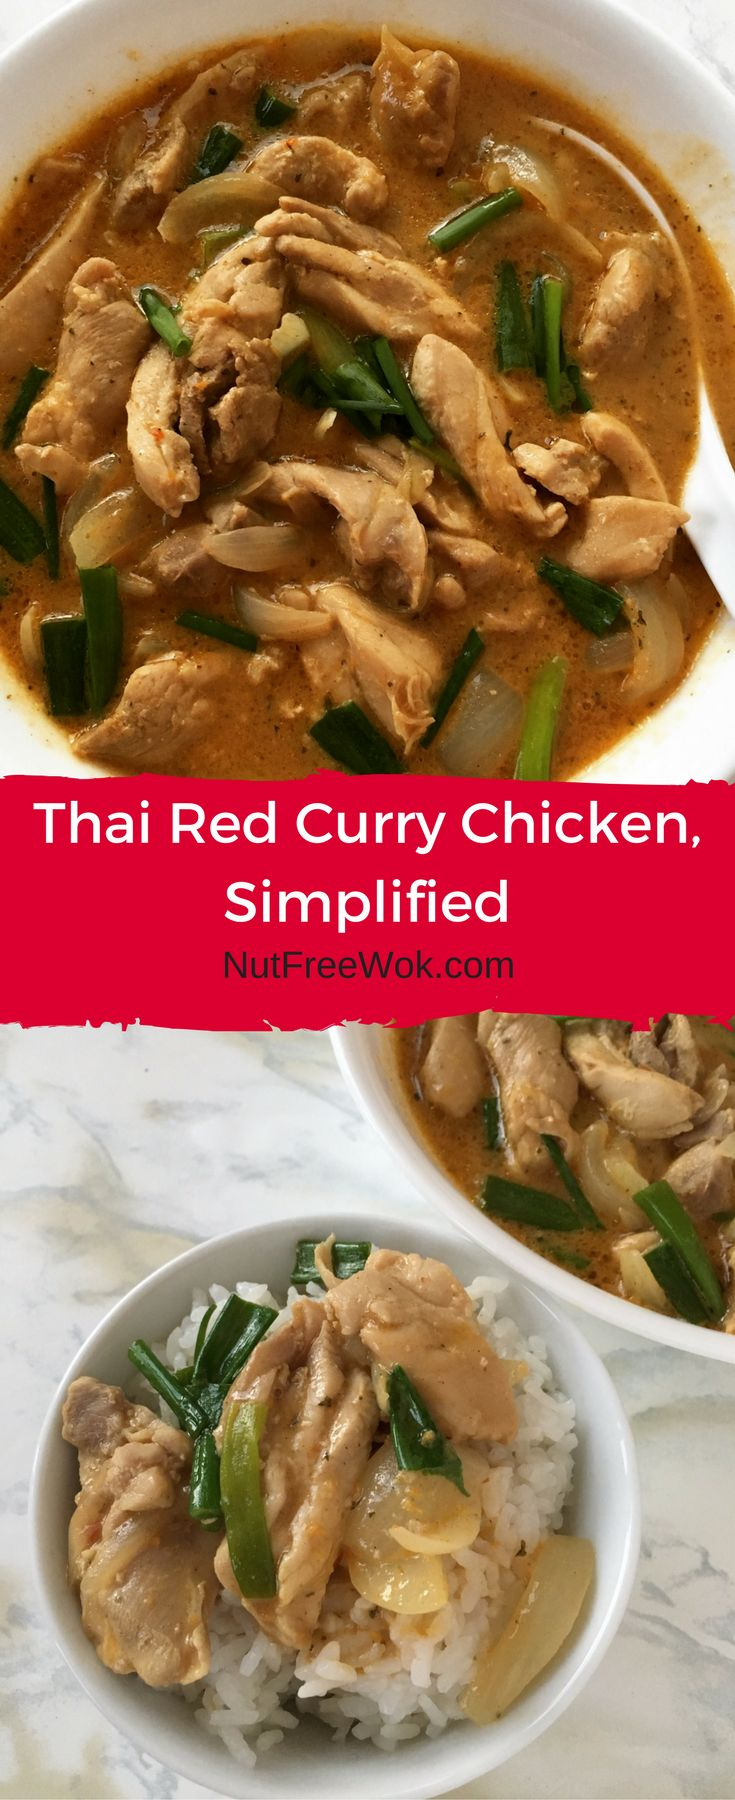 I made Thai Red Curry Chicken at home with an easy to use sauce mix. It was a simple and satisfying meal for a busy weeknight dinner. #nutfree #thaifood #asianfood #dinner #curry #chicken #foodallergy